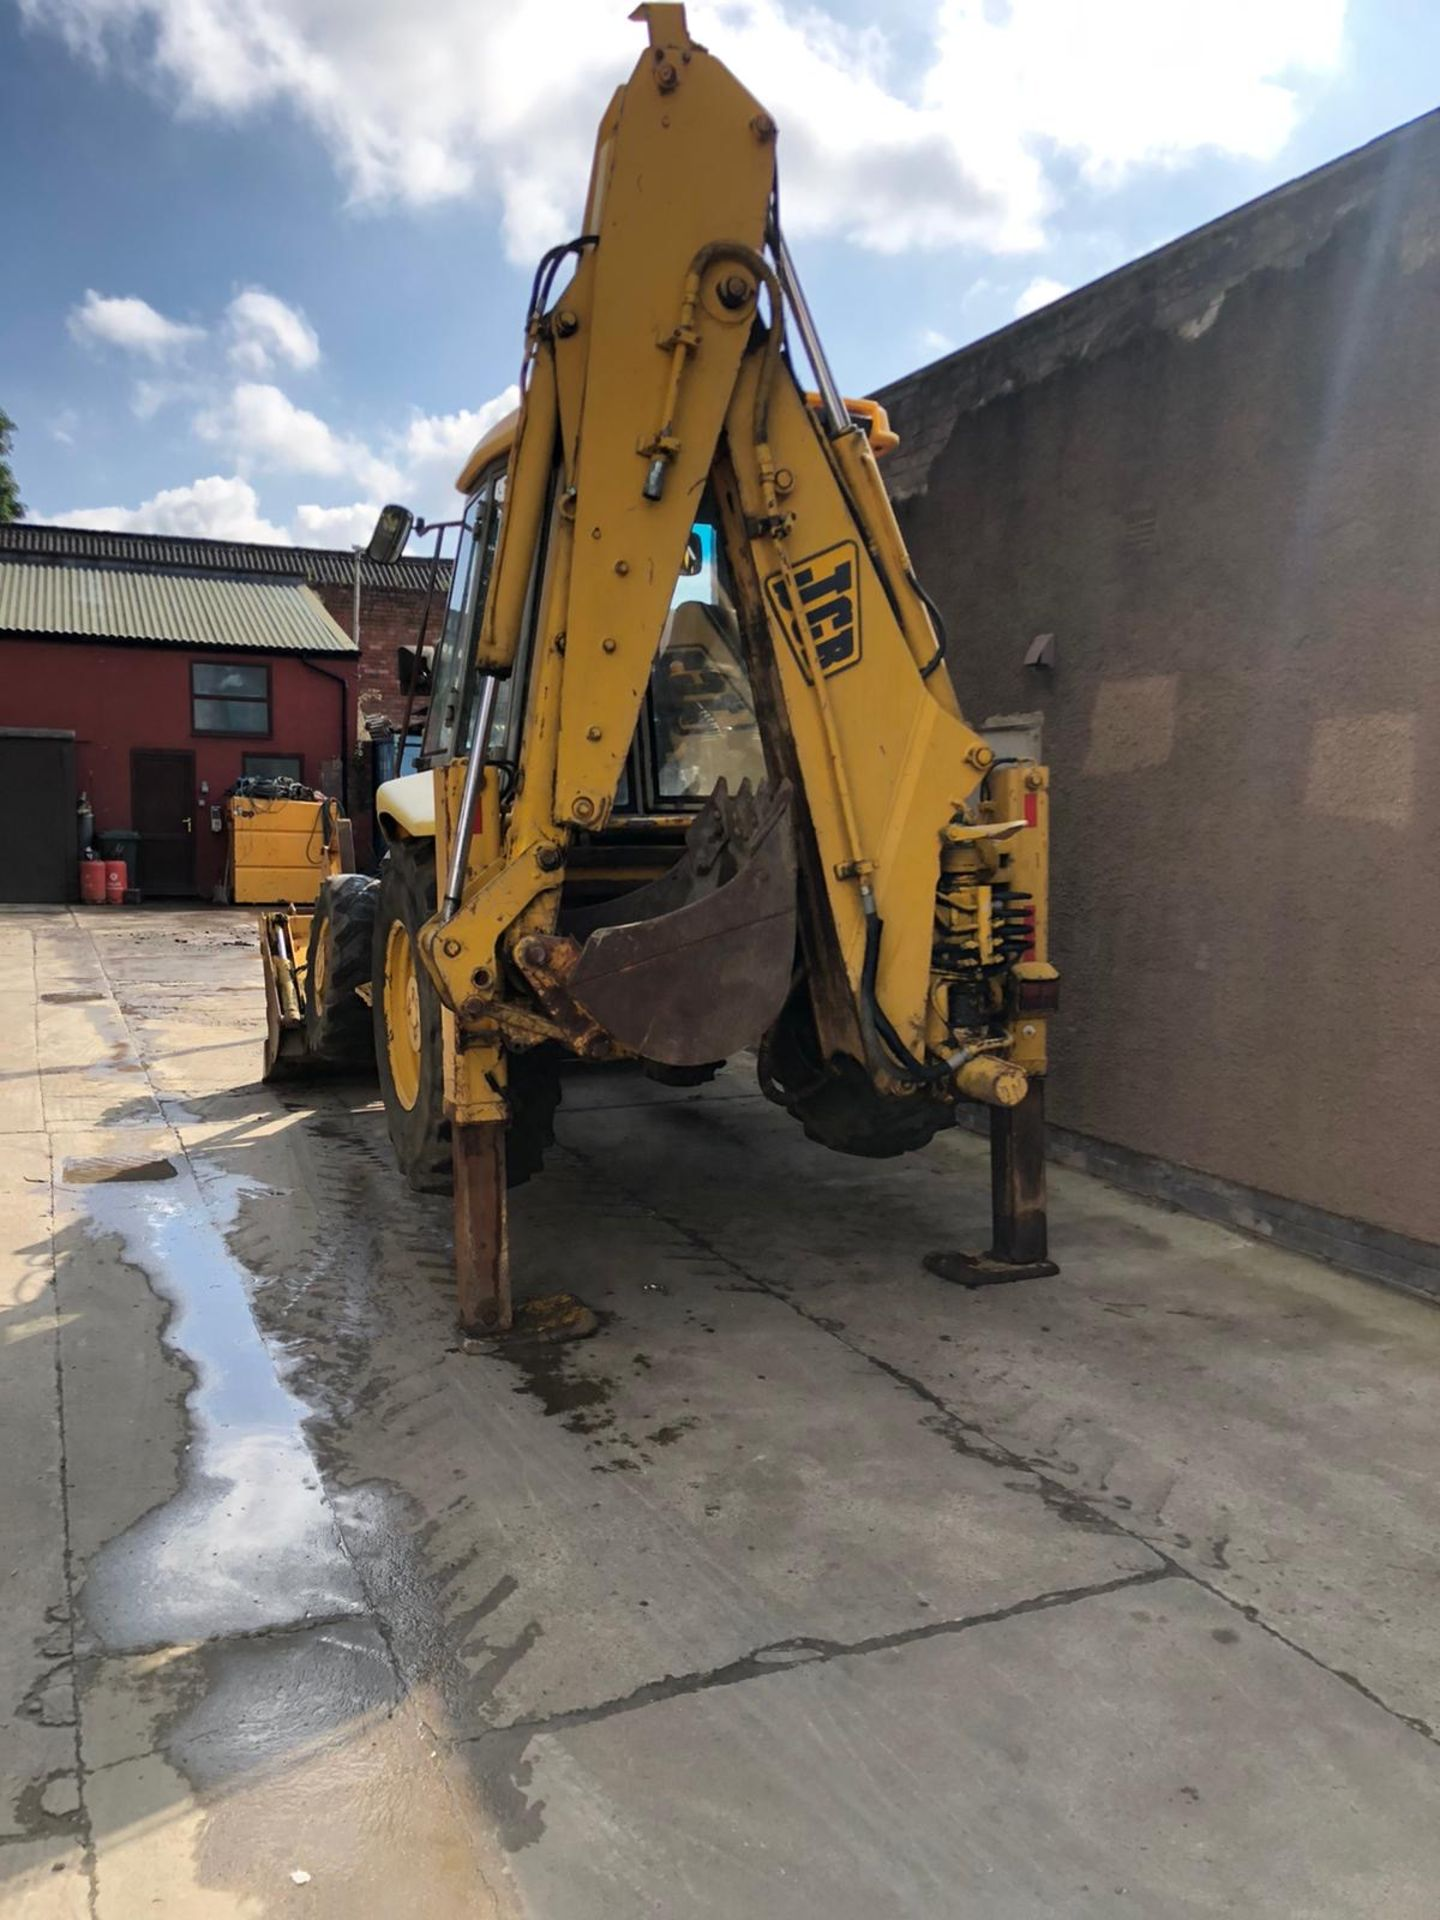 JCB 3CX PROJECT 8 DIGGER, 4X4, EXTRA DIG, C/W 3 BUCKETS, HOURS FROM NEW 7434 ONLY *NO VAT* - Image 3 of 16